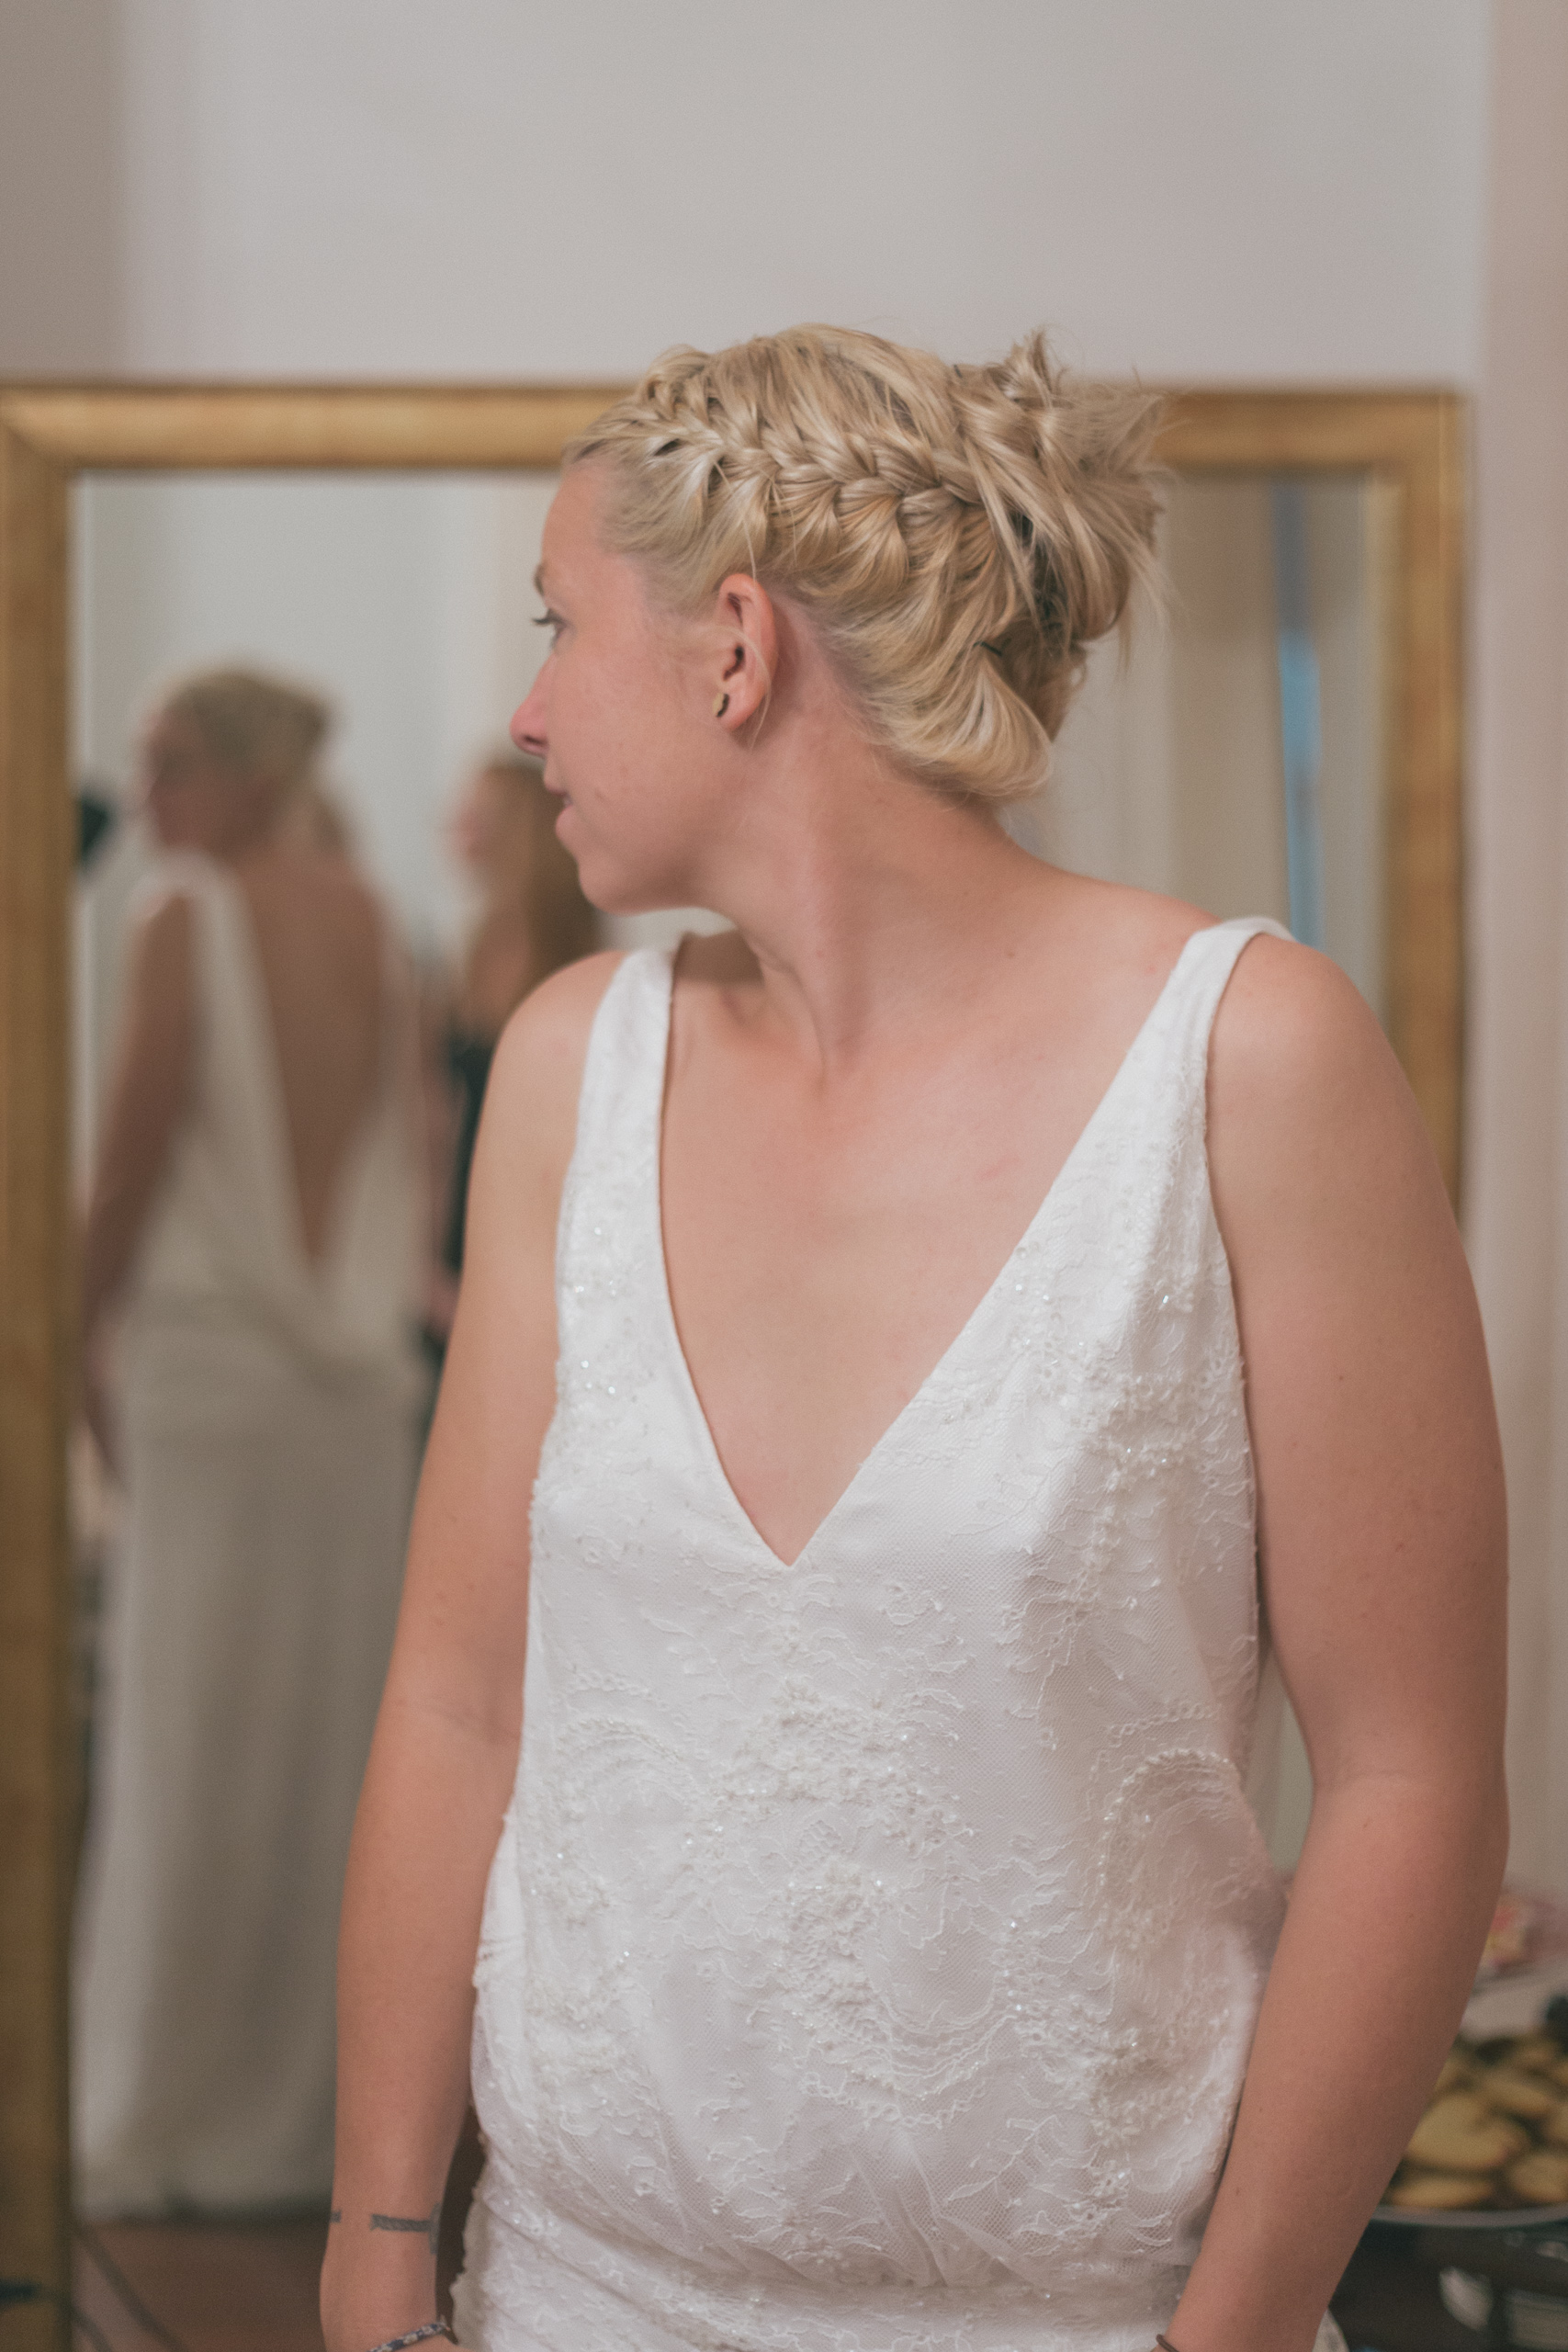 My Friend Kobi in a Charlie Brear gown looking loverly